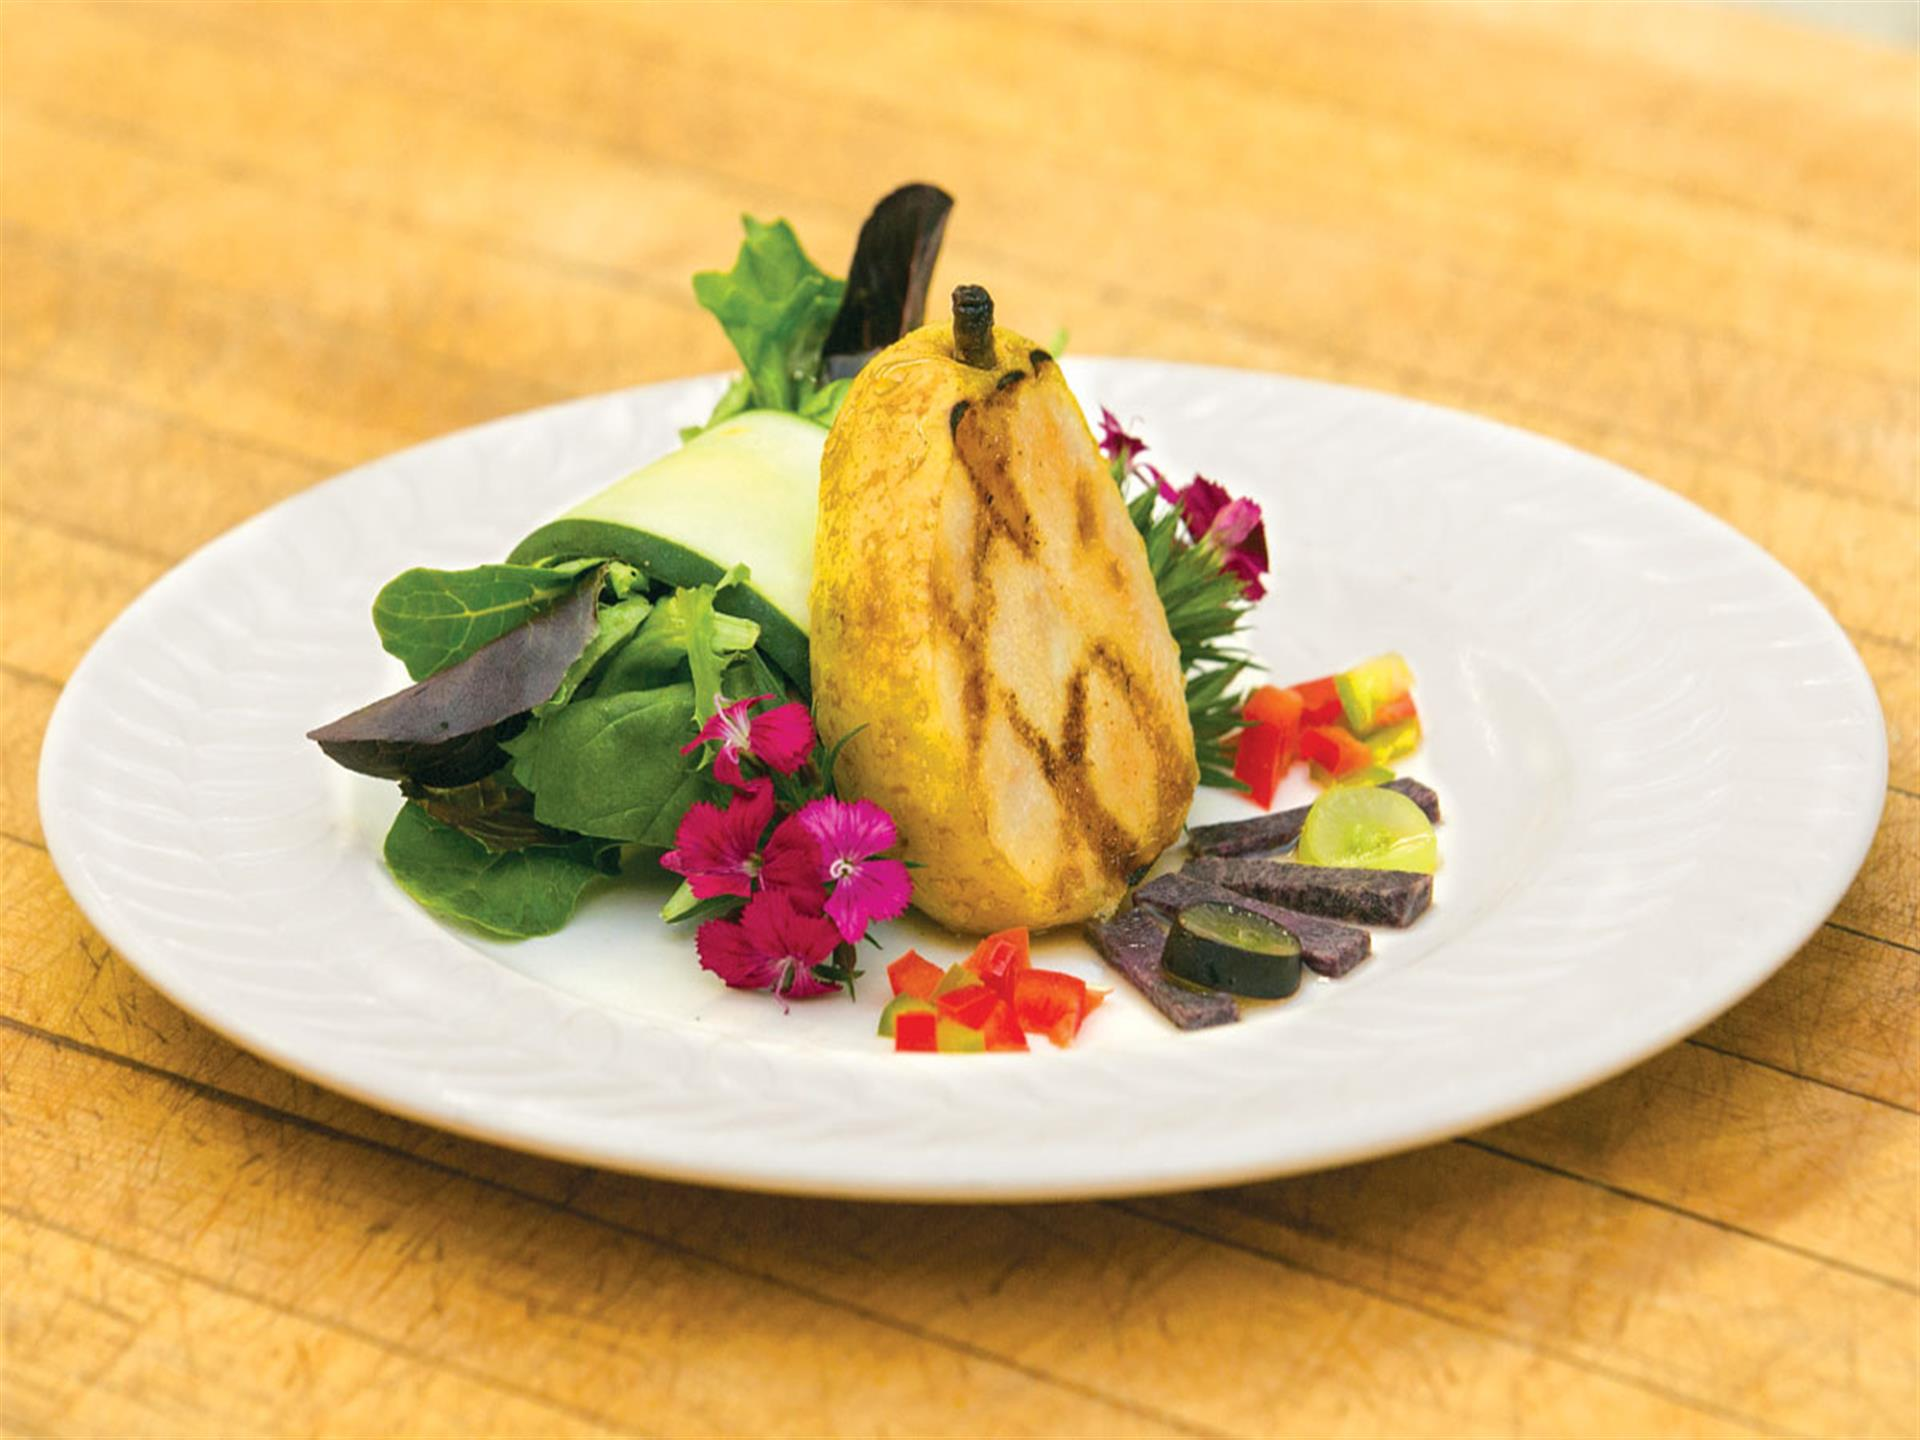 grilled pear dessert on a plate with edible flowers